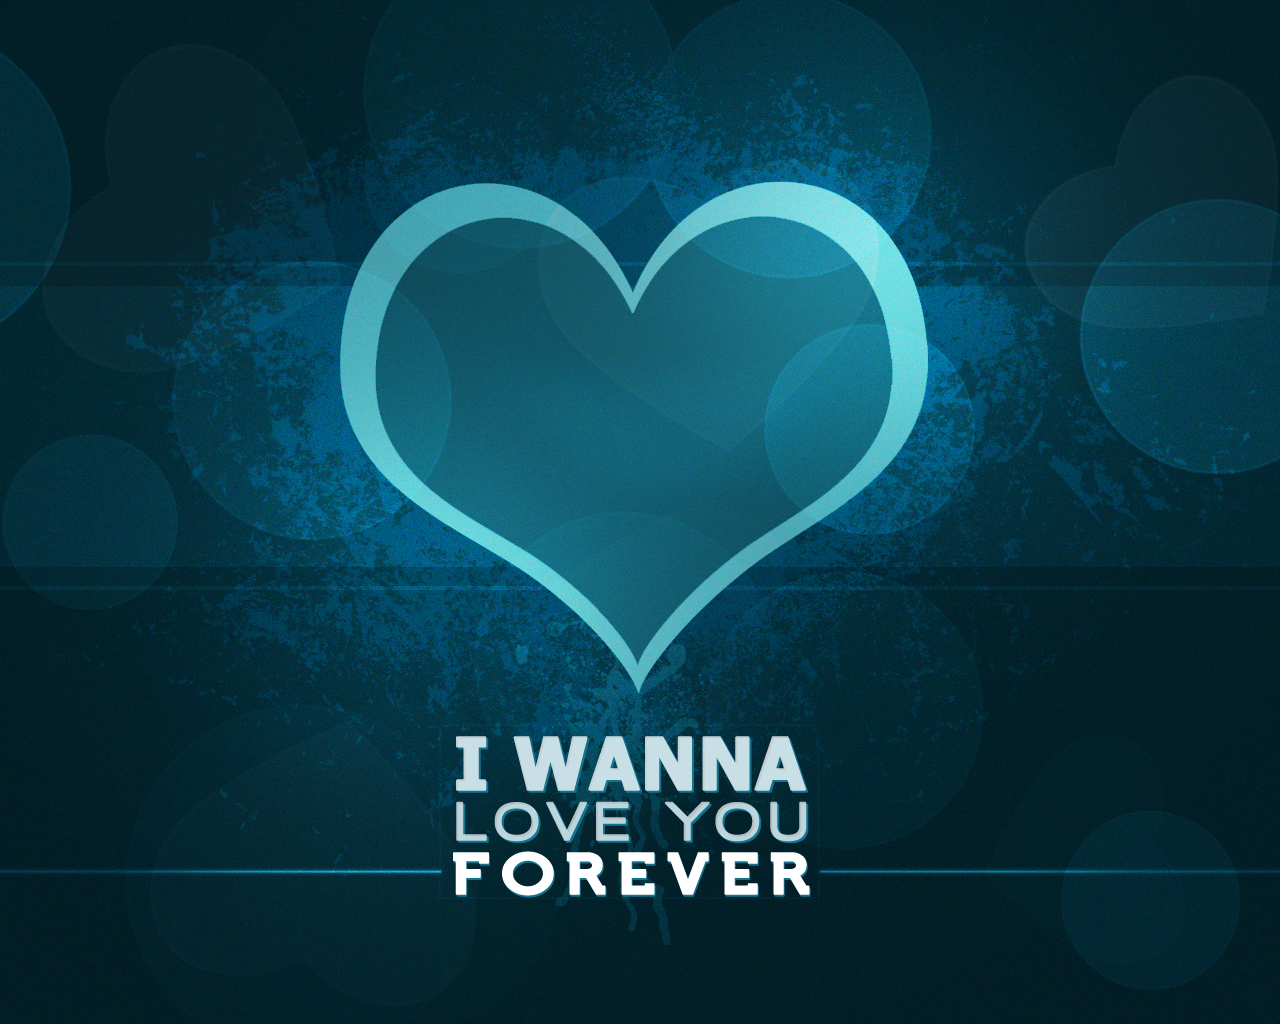 Wallpaper - I Wanna Love You Forever by diigu on DeviantArt